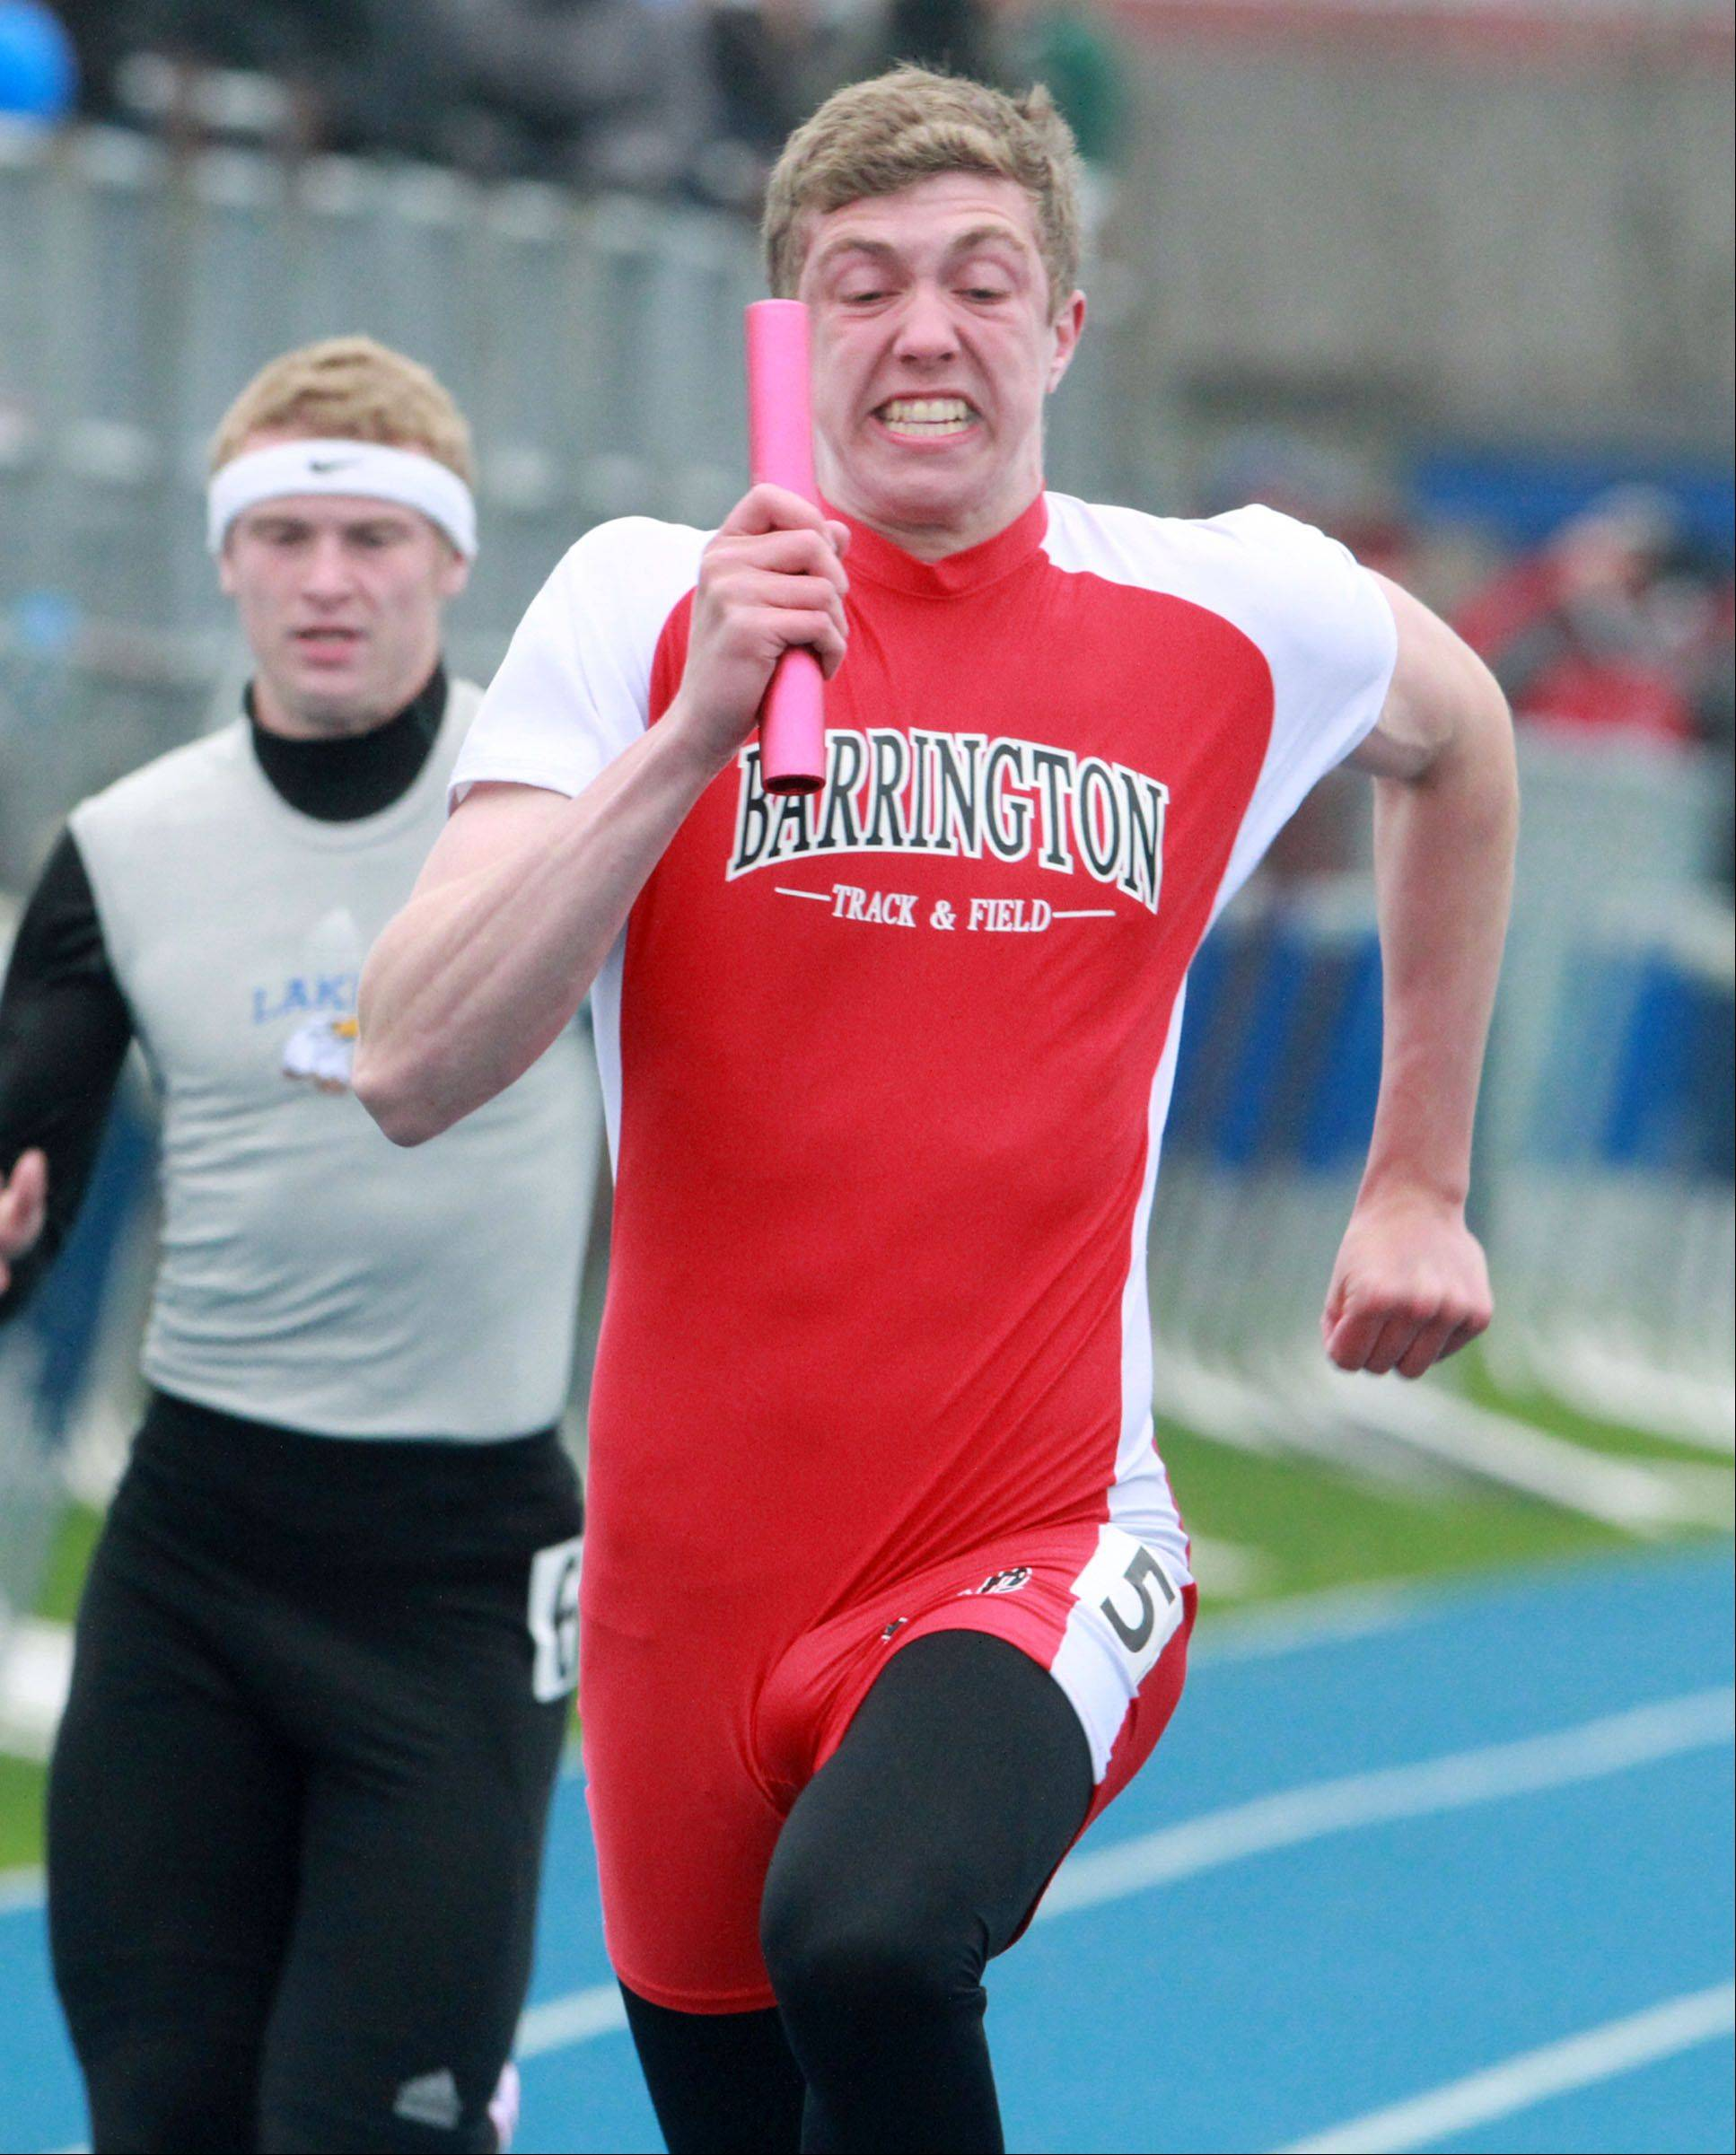 Parker DeLoye runs the last leg as Barrington wins the 4 x 100-meter relay in last spring�s Lake County meet at Lake Zurich. DeLoye has committed to a track and field future at Kentucky.